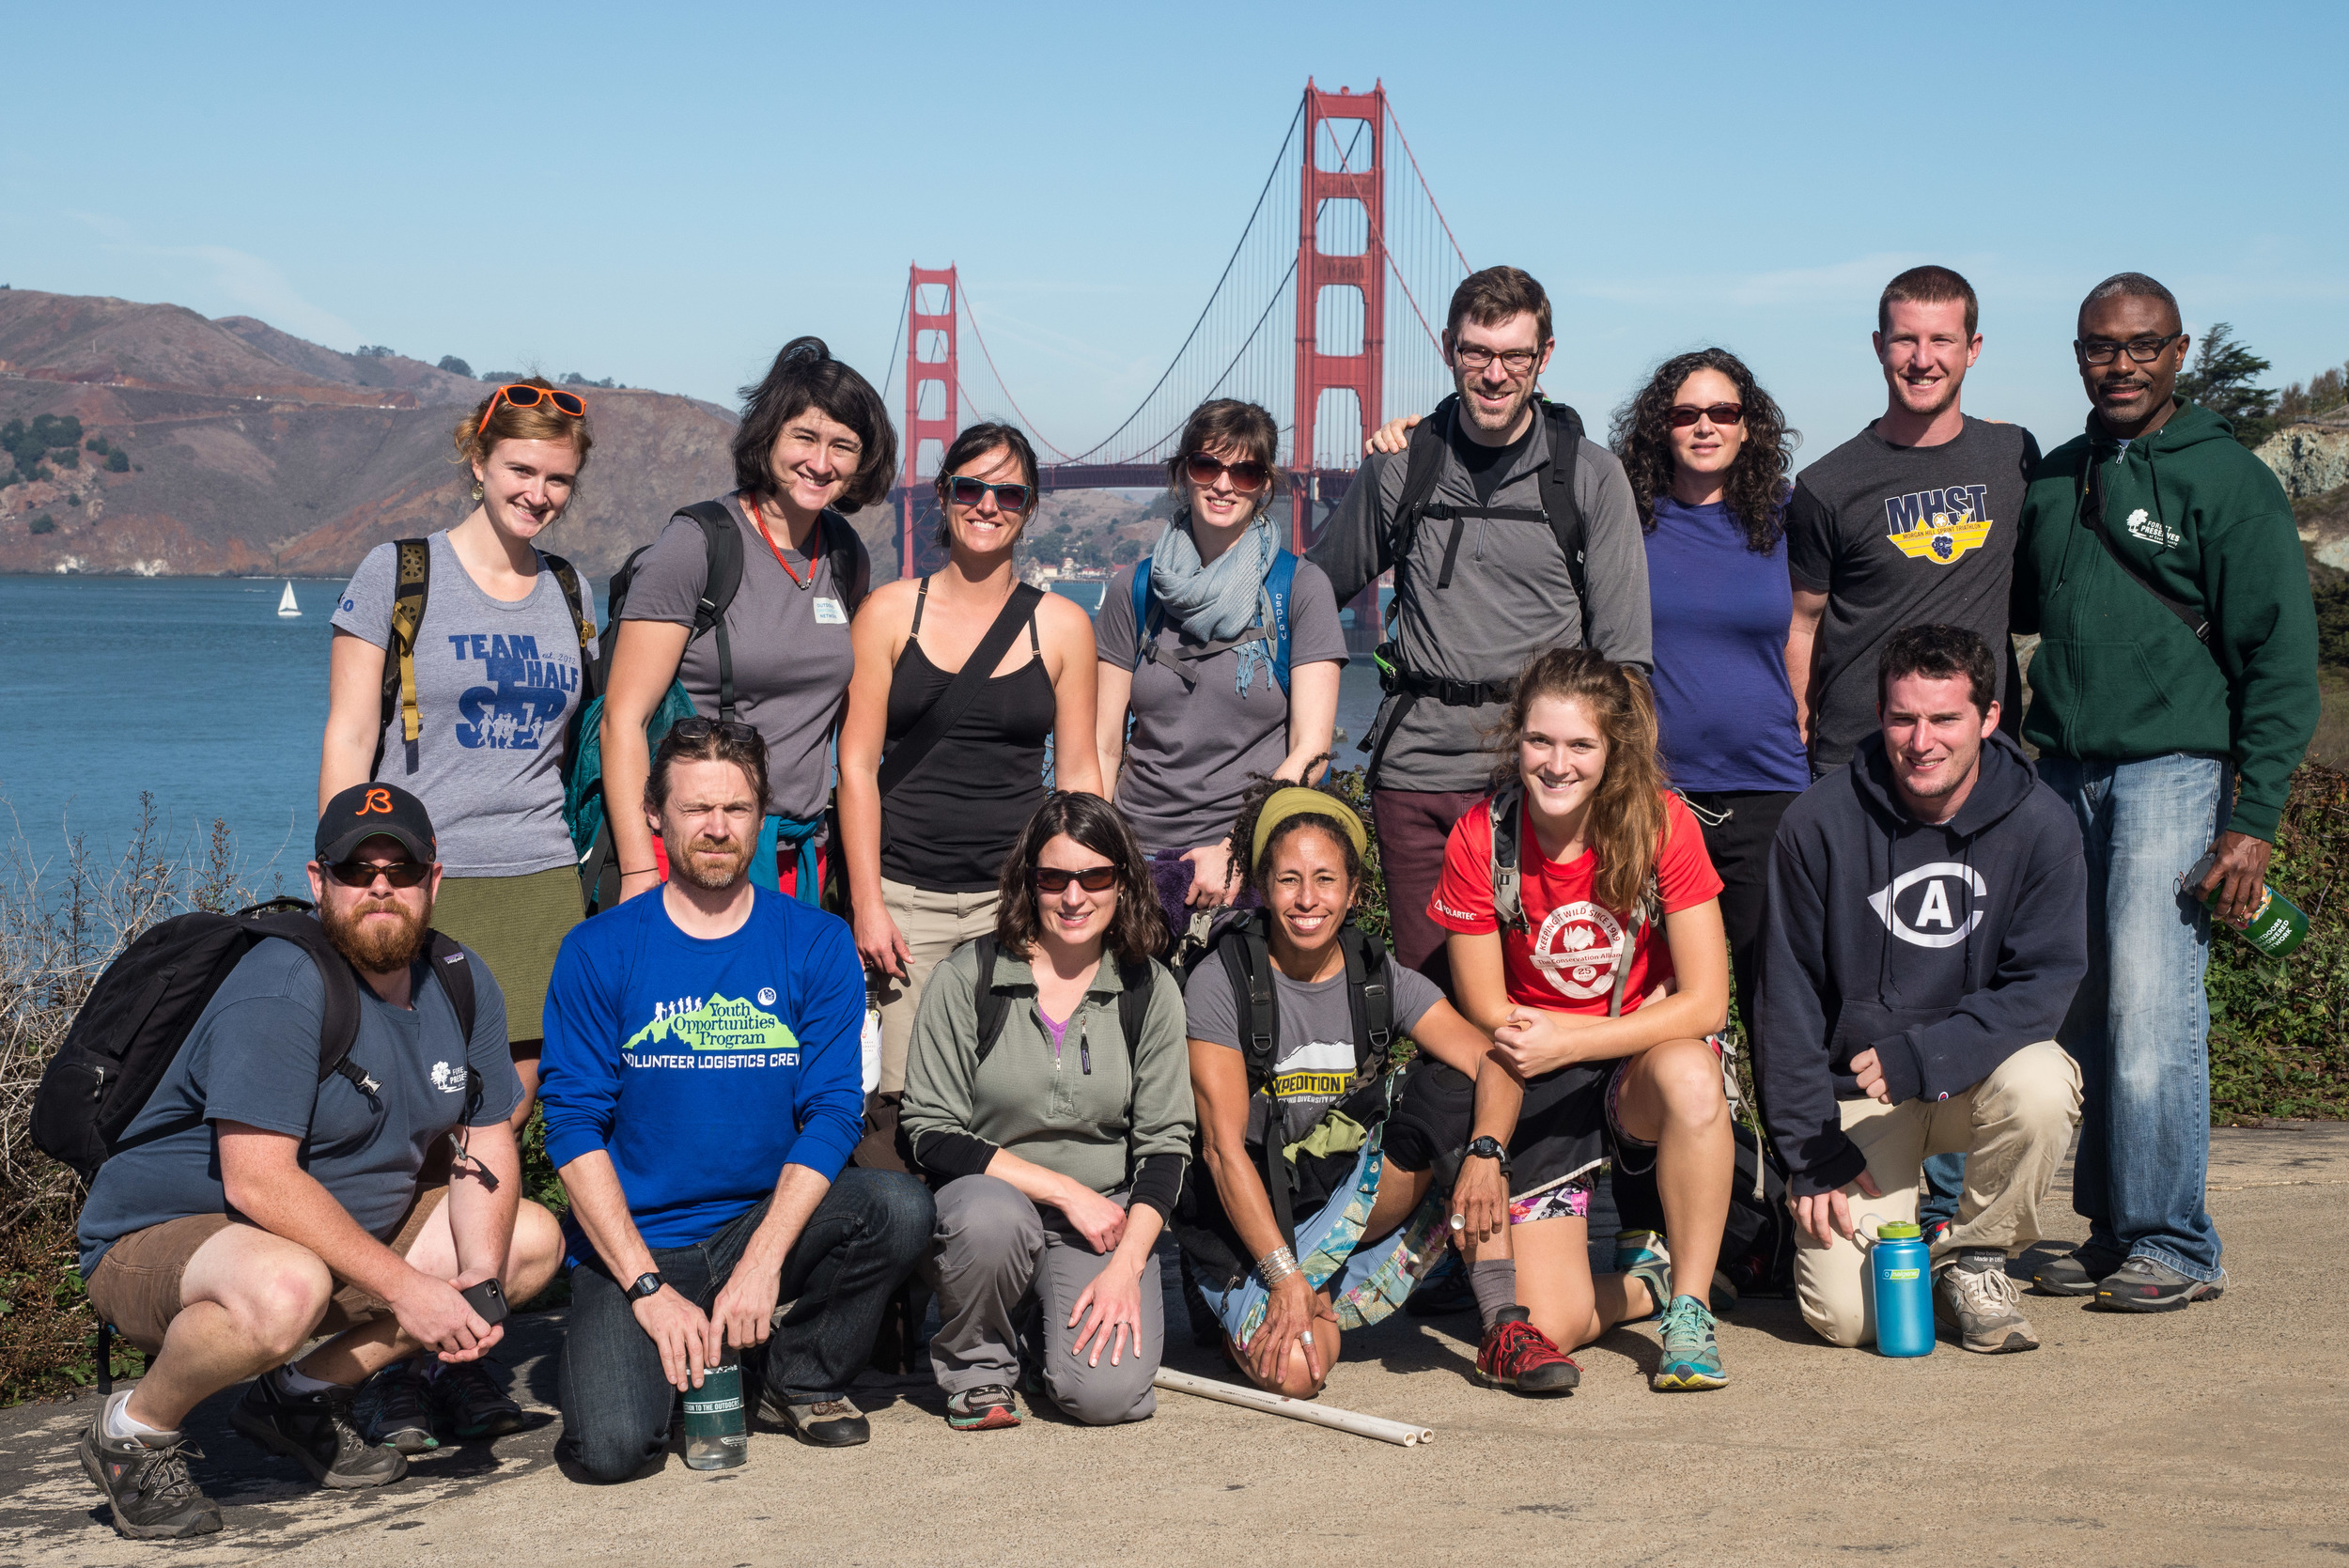 To the bridge! A group shot with San Francisco's iconic Golden Gate.